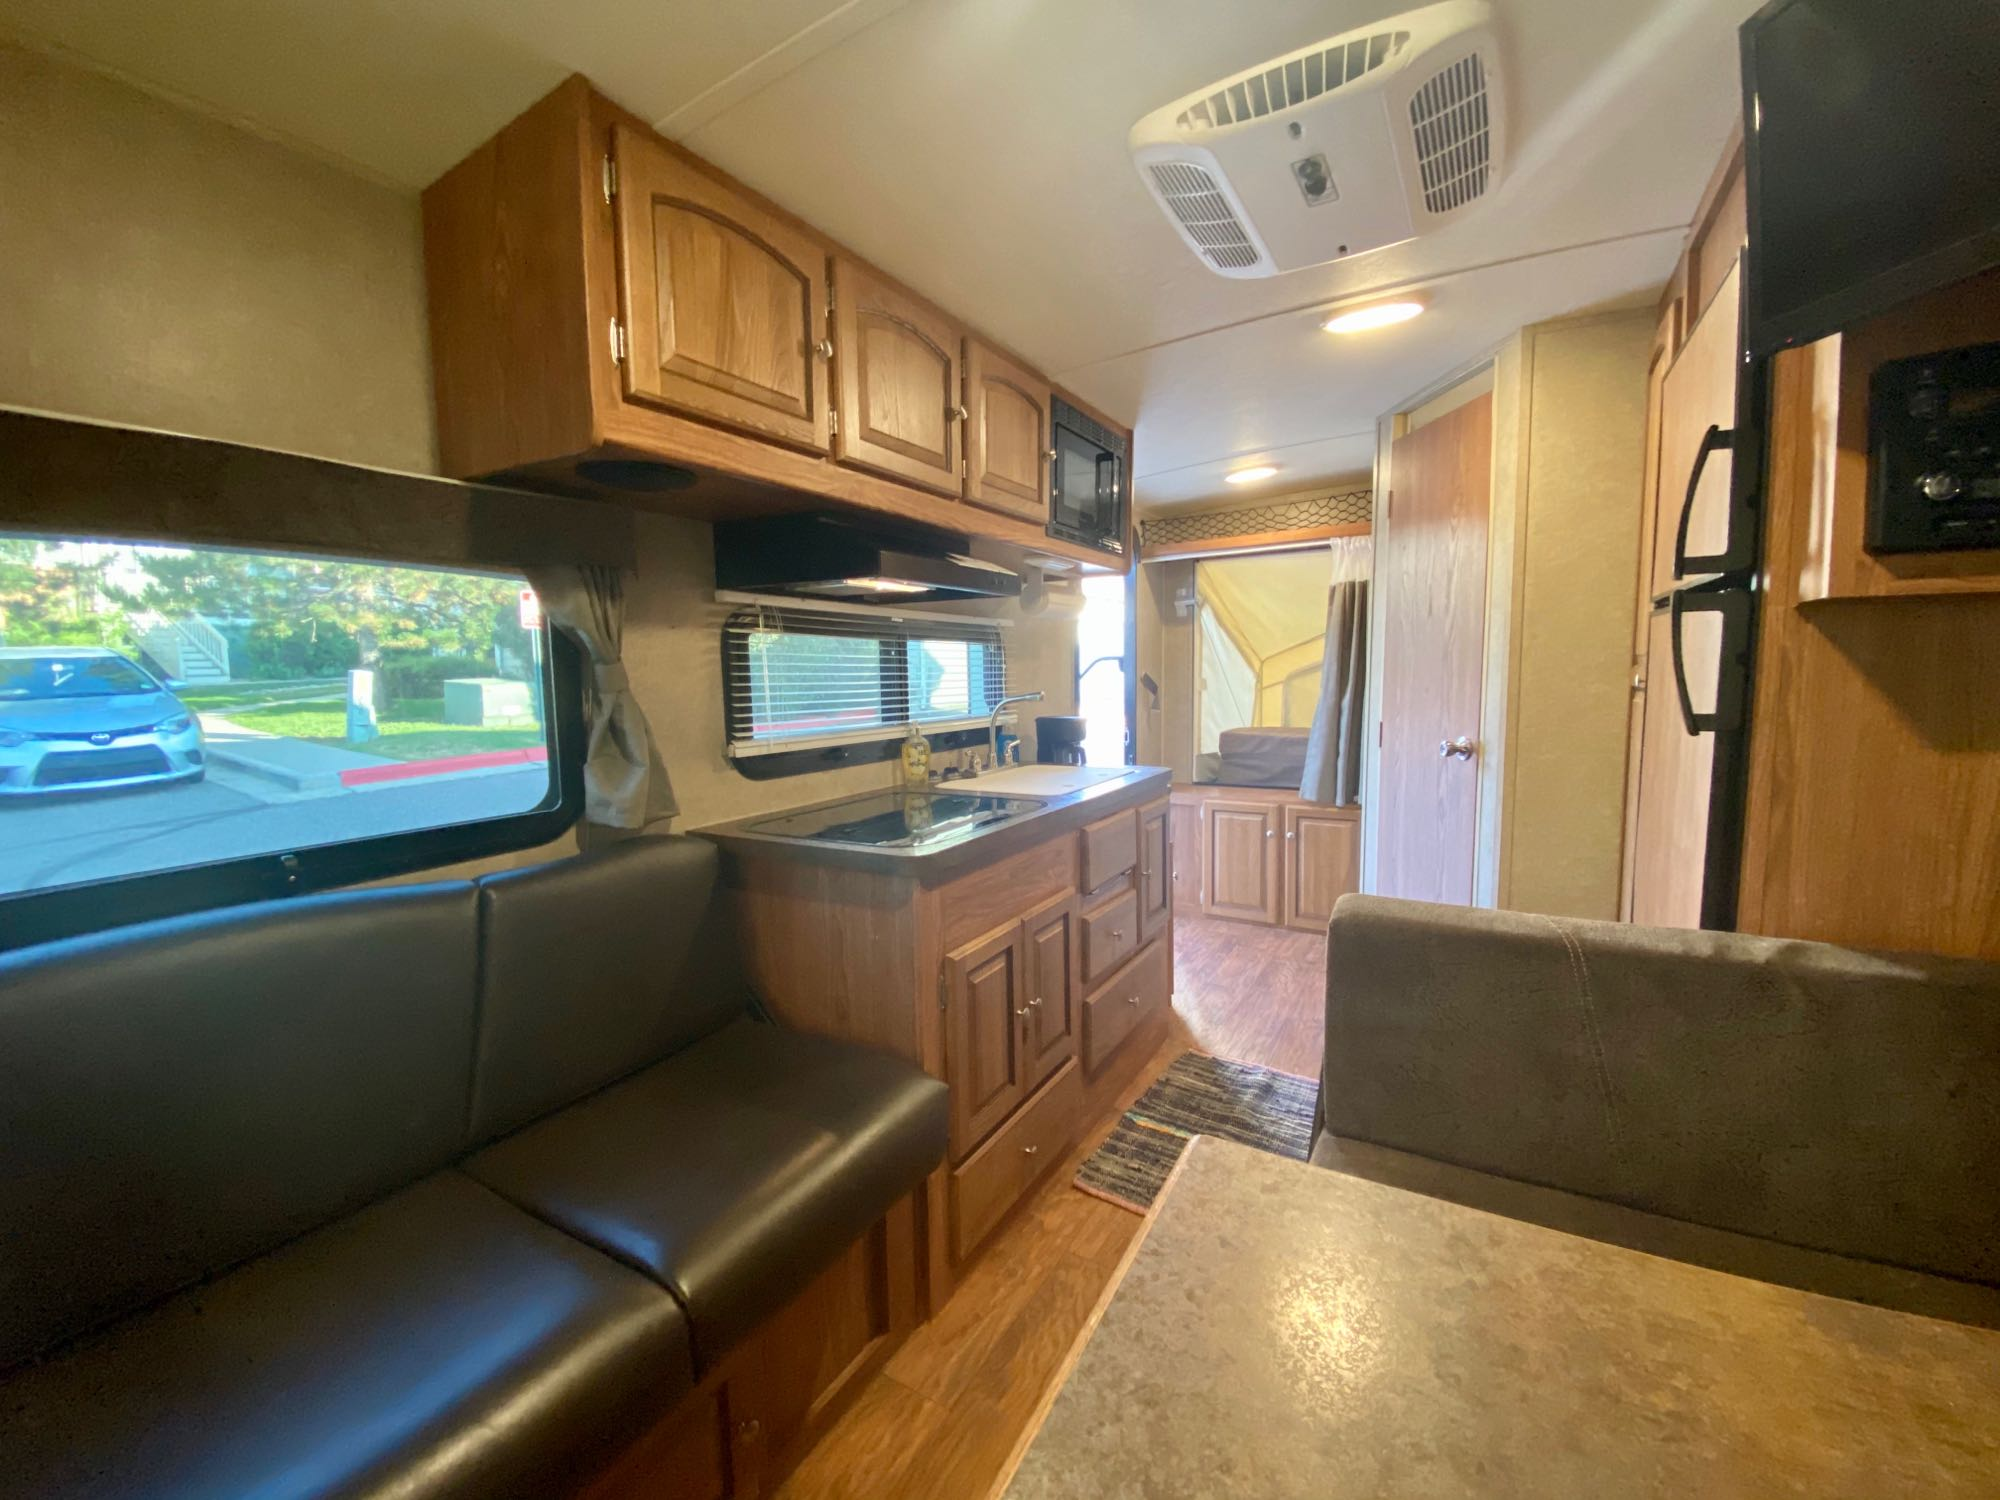 couch and kitchen from dinette at back. Forest River Rockwood Roo 2015